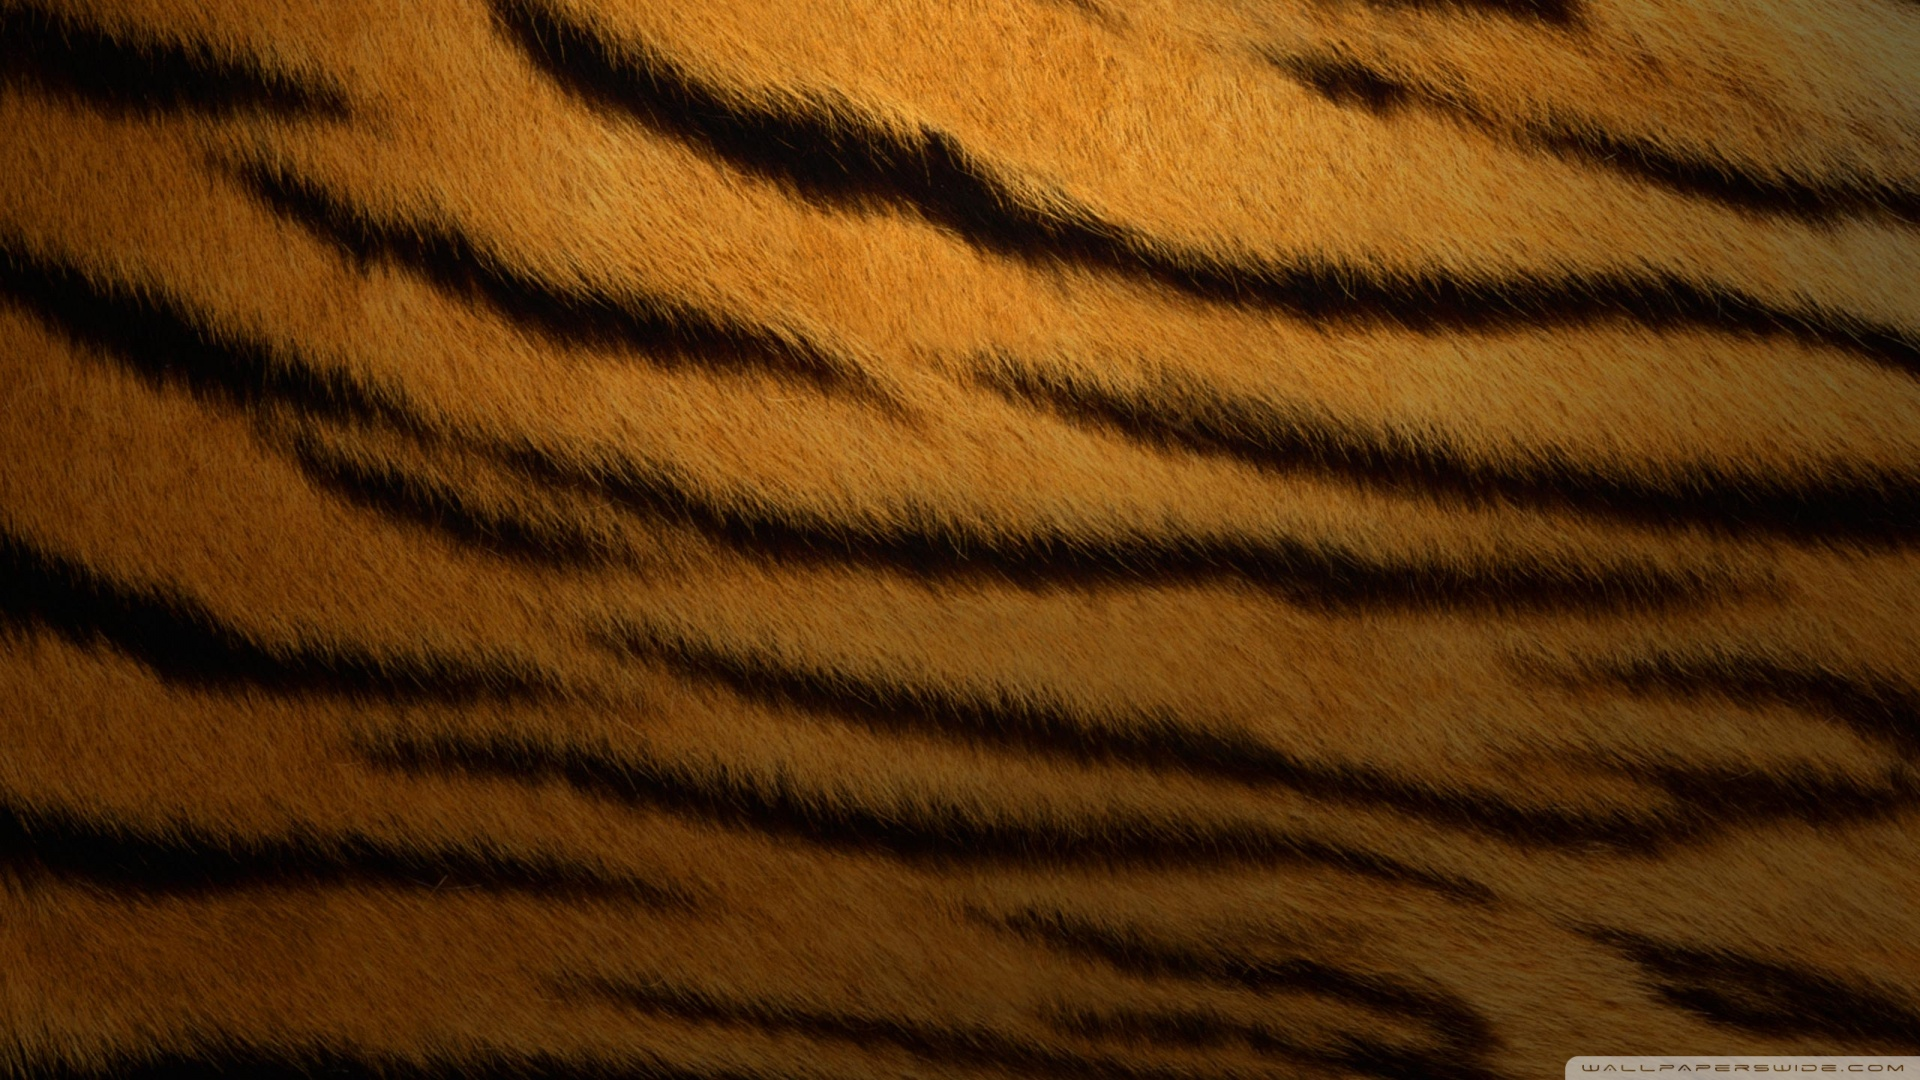 Tiger fur background